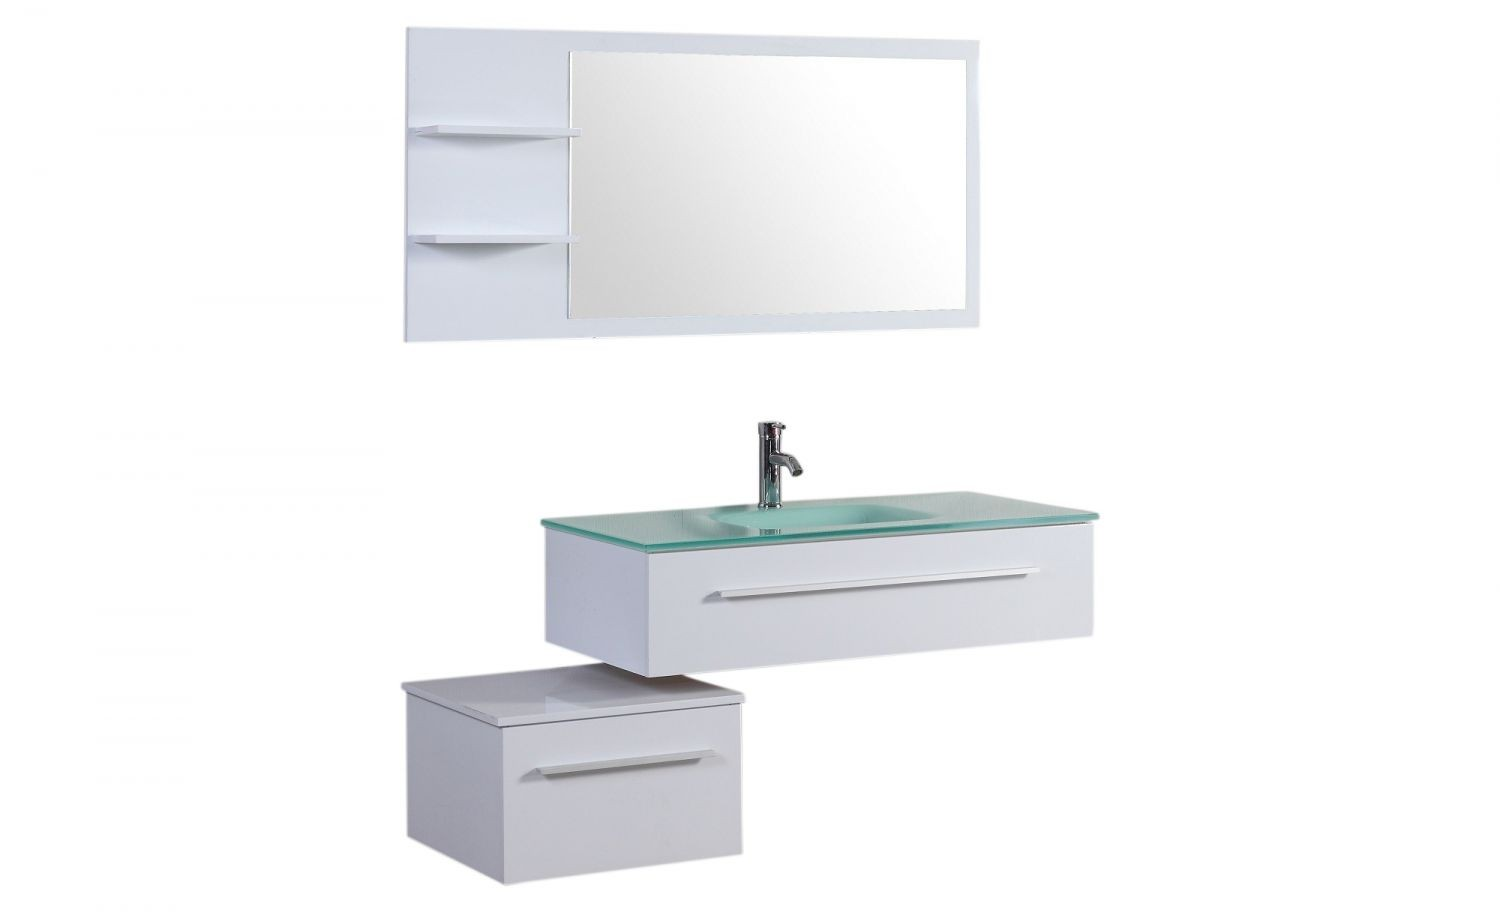 essiba ensemble 2 meubles 1 vasque 1 miroir pour salle de bain blanc meubles de salle. Black Bedroom Furniture Sets. Home Design Ideas